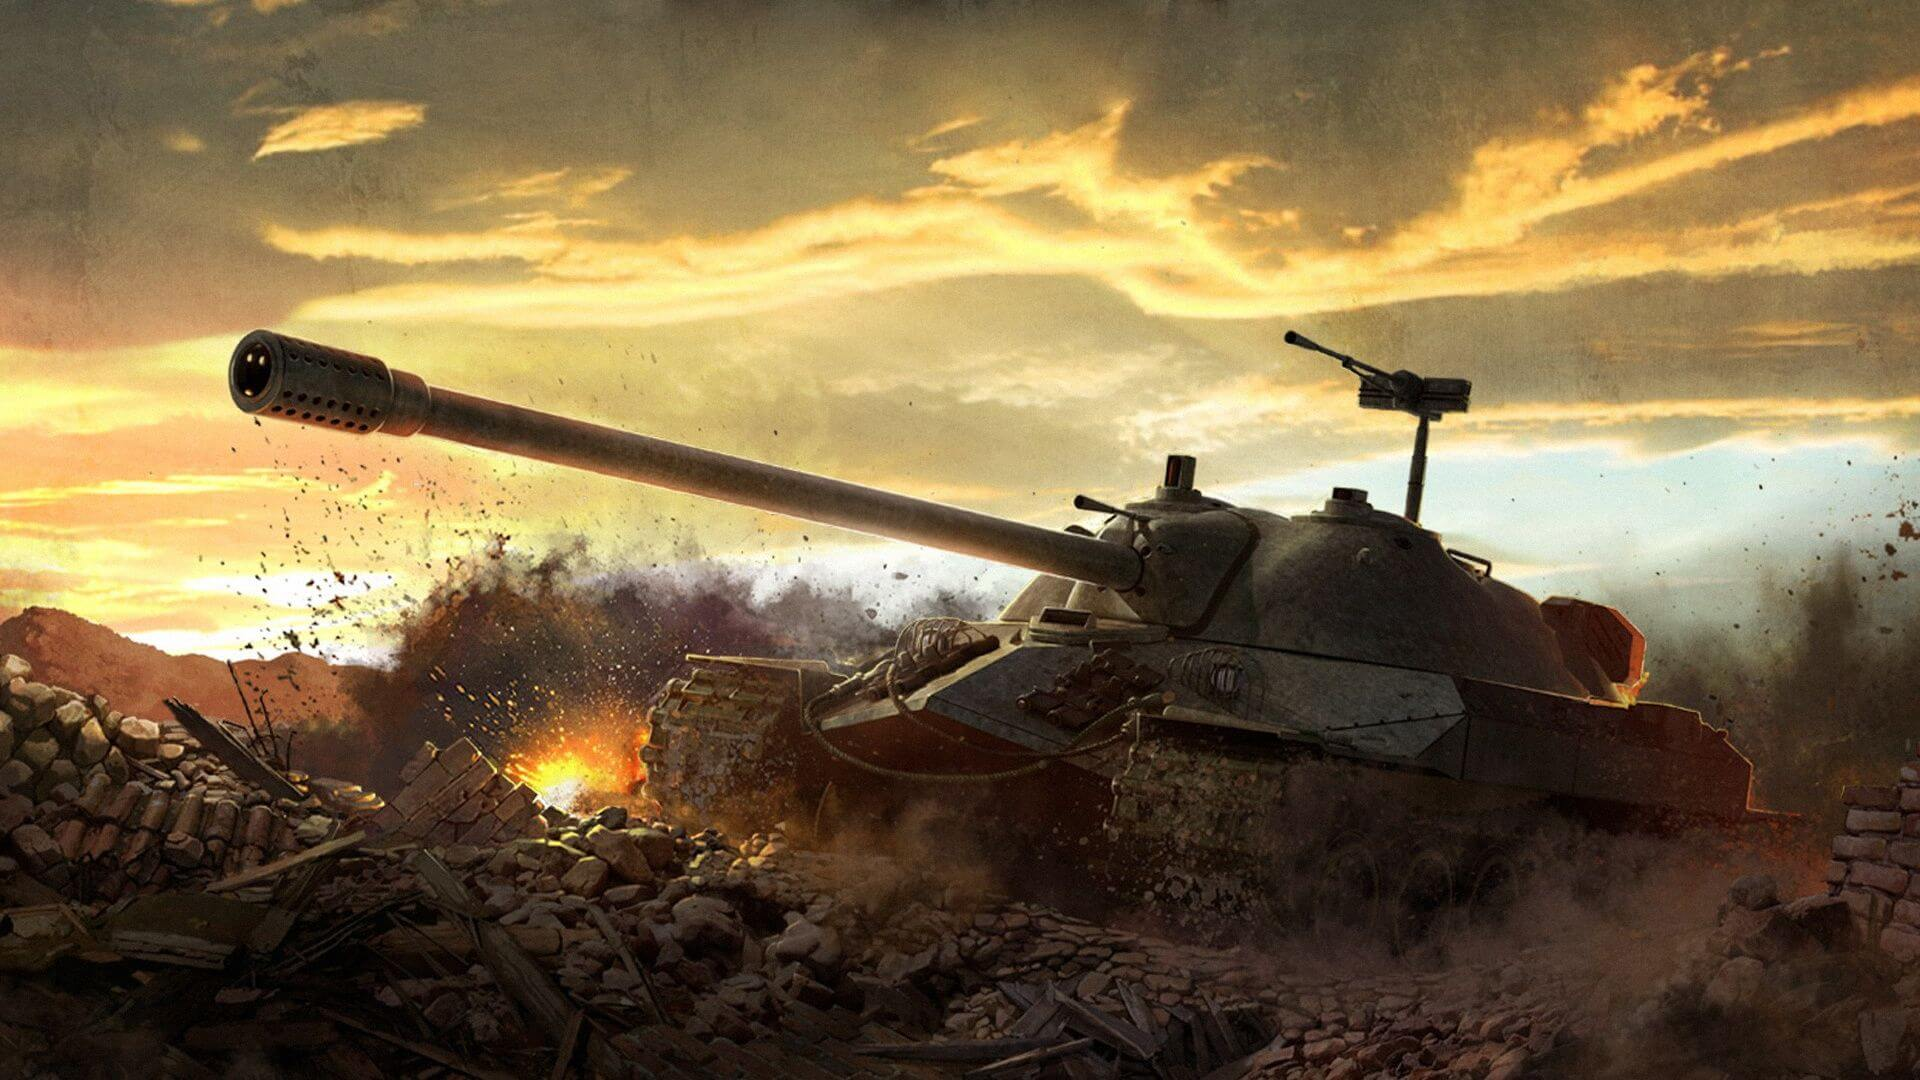 Удаление крон world of tanks скачать